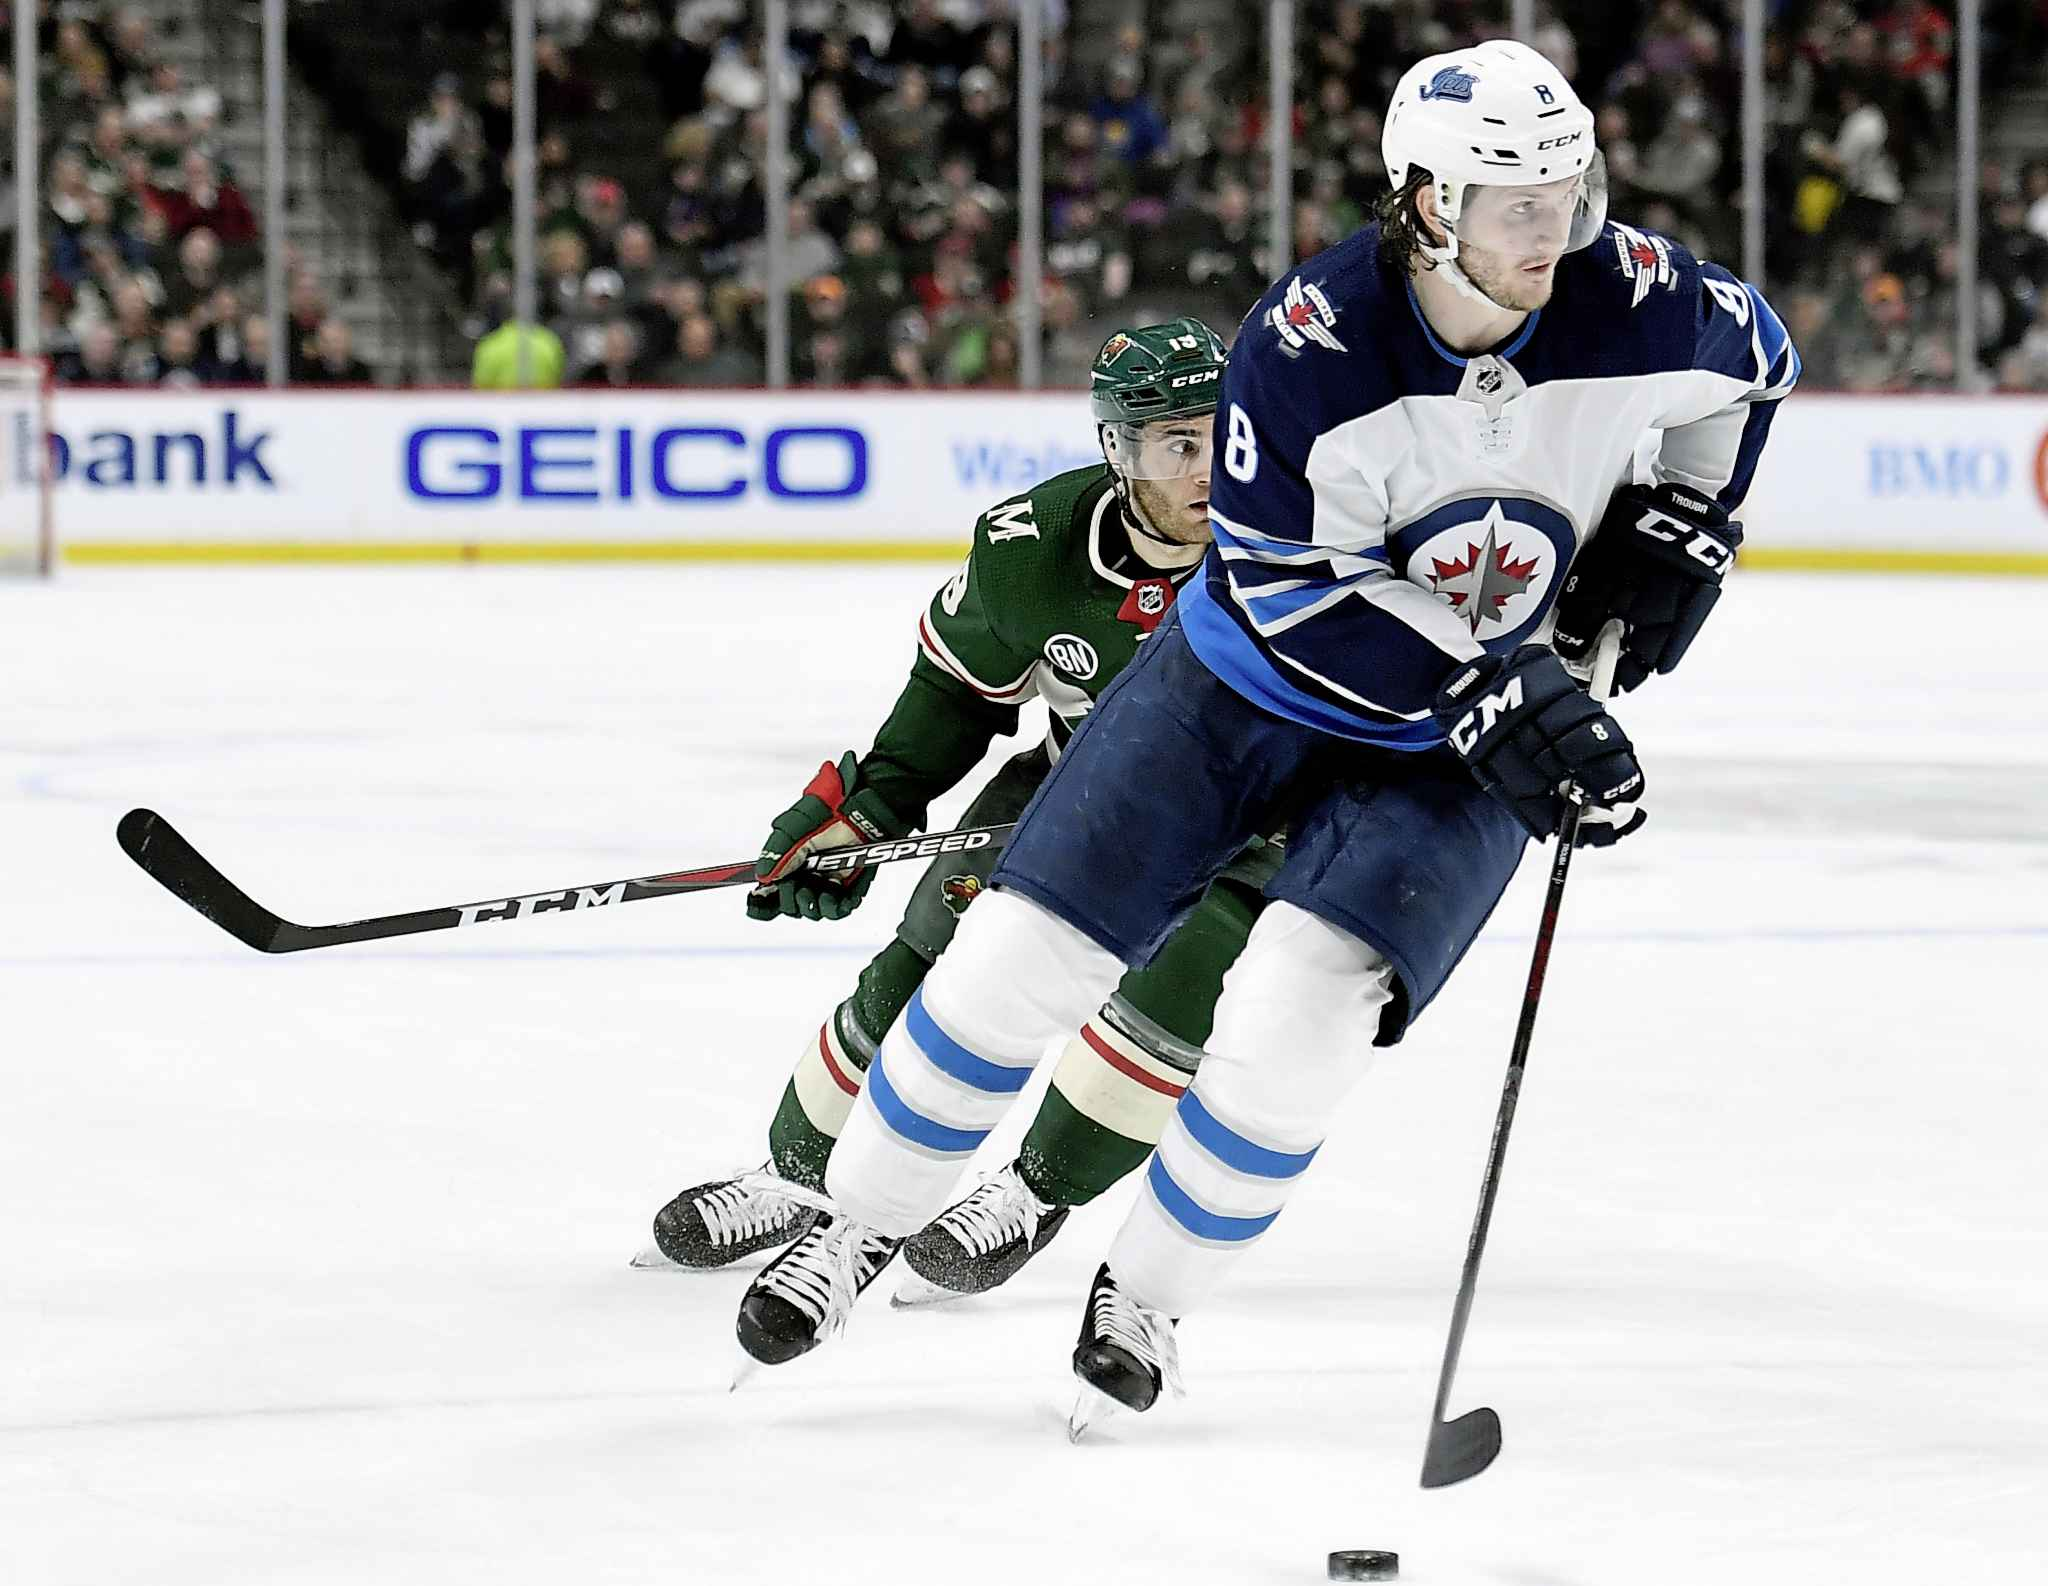 Winnipeg Jets defenceman Jacob Trouba was traded to the New York Rangers for defenceman Neal Pionk and the 20th overall pick in the upcoming NHL draft. The teams announced the trade Monday.